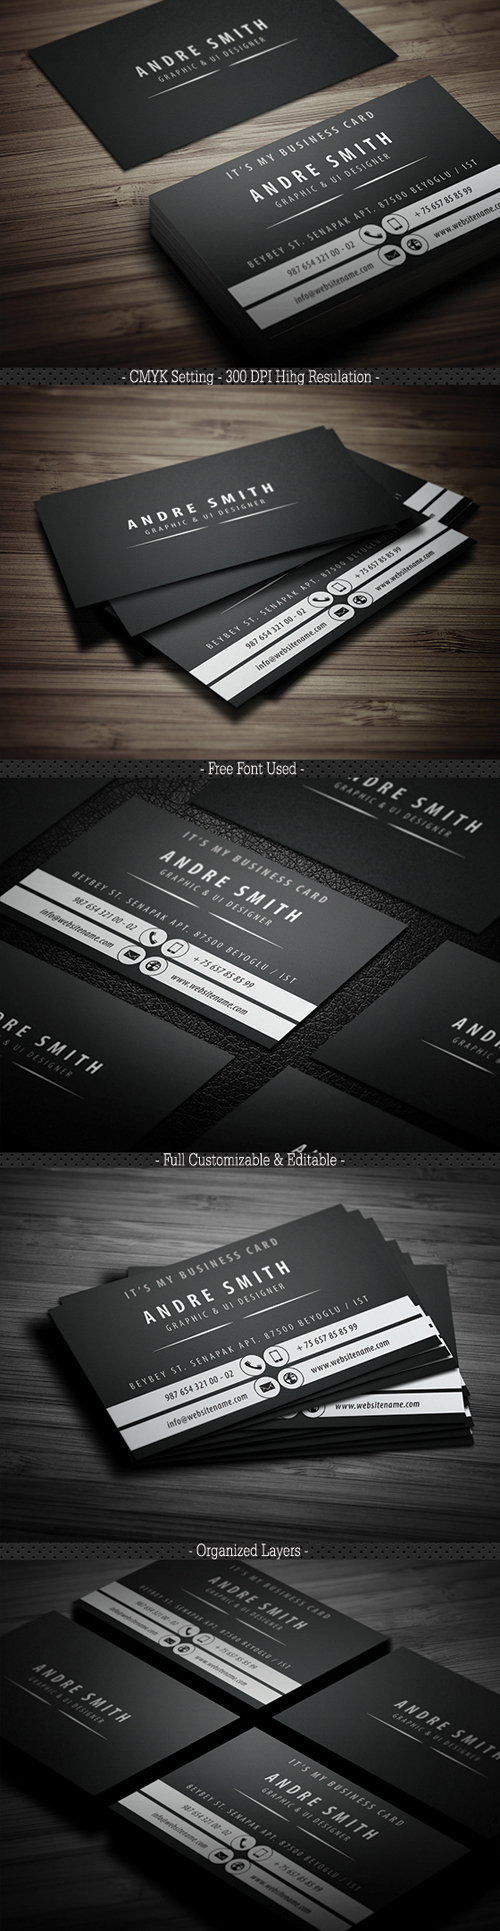 Business Card Templates (PSD) - 13